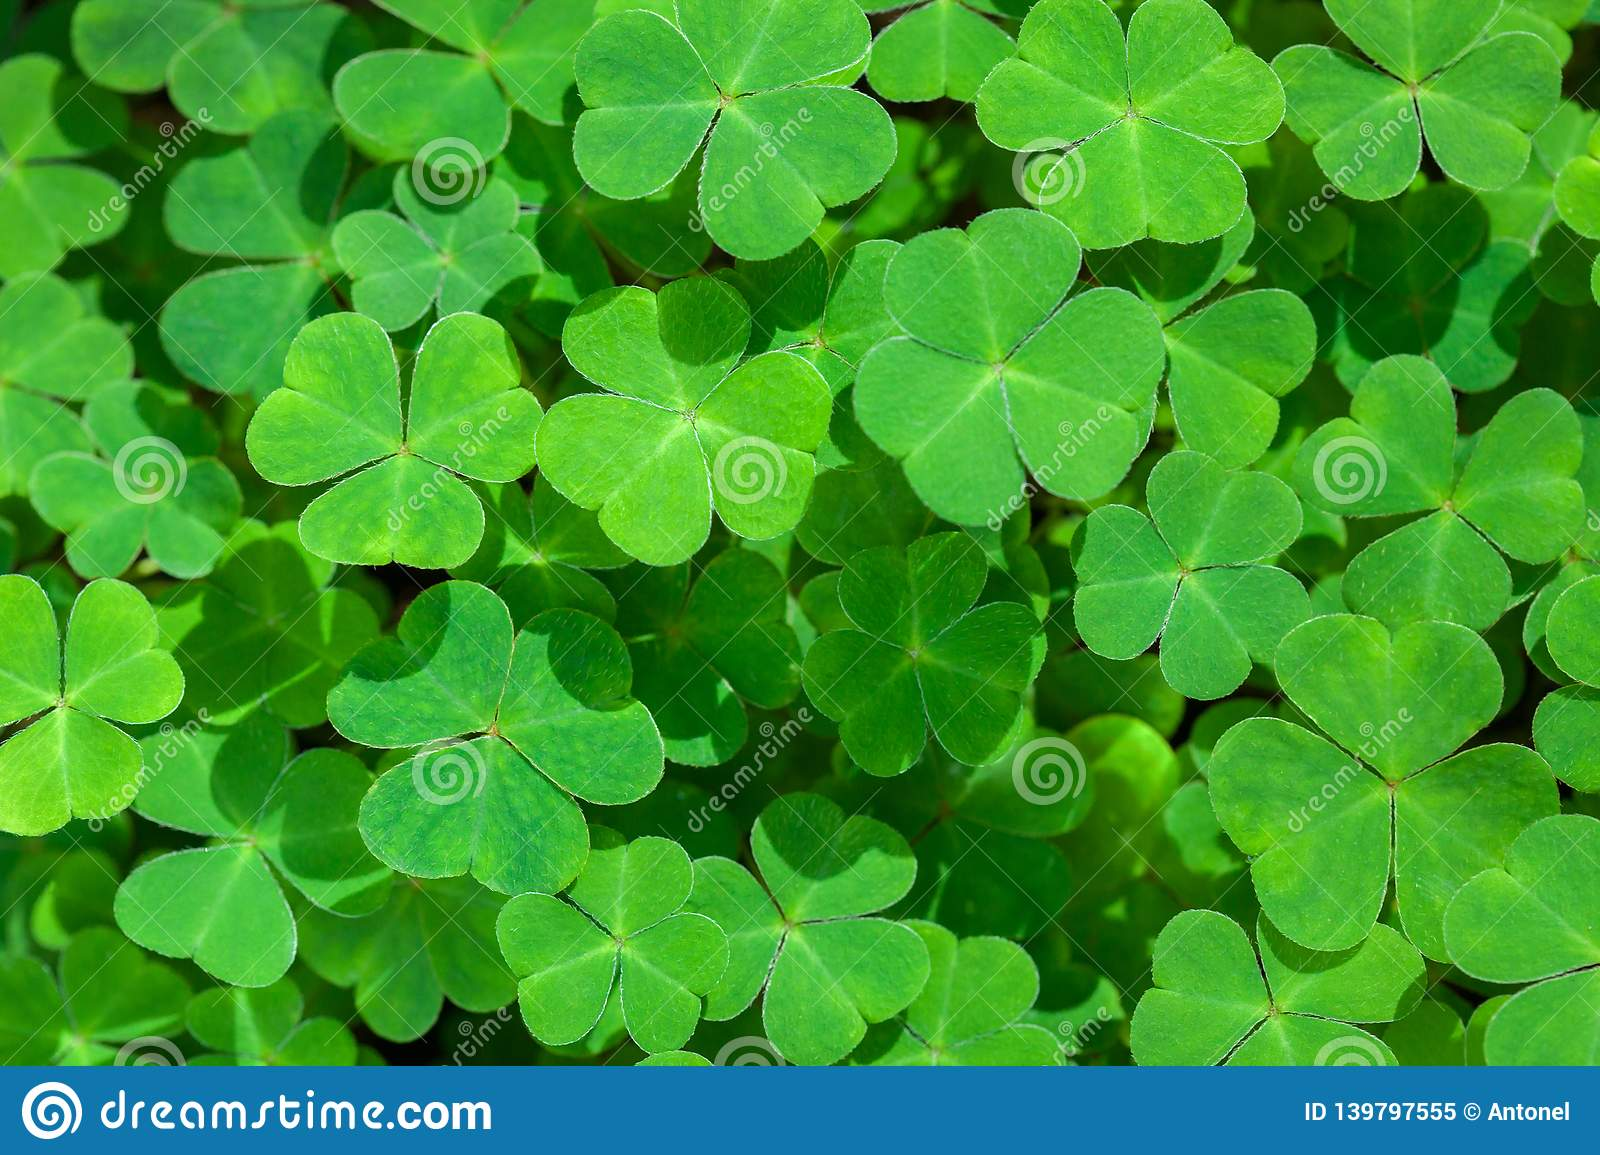 Natural green background with fresh three-leaved shamrocks. St. Patrick`s day holiday symbol. Top View